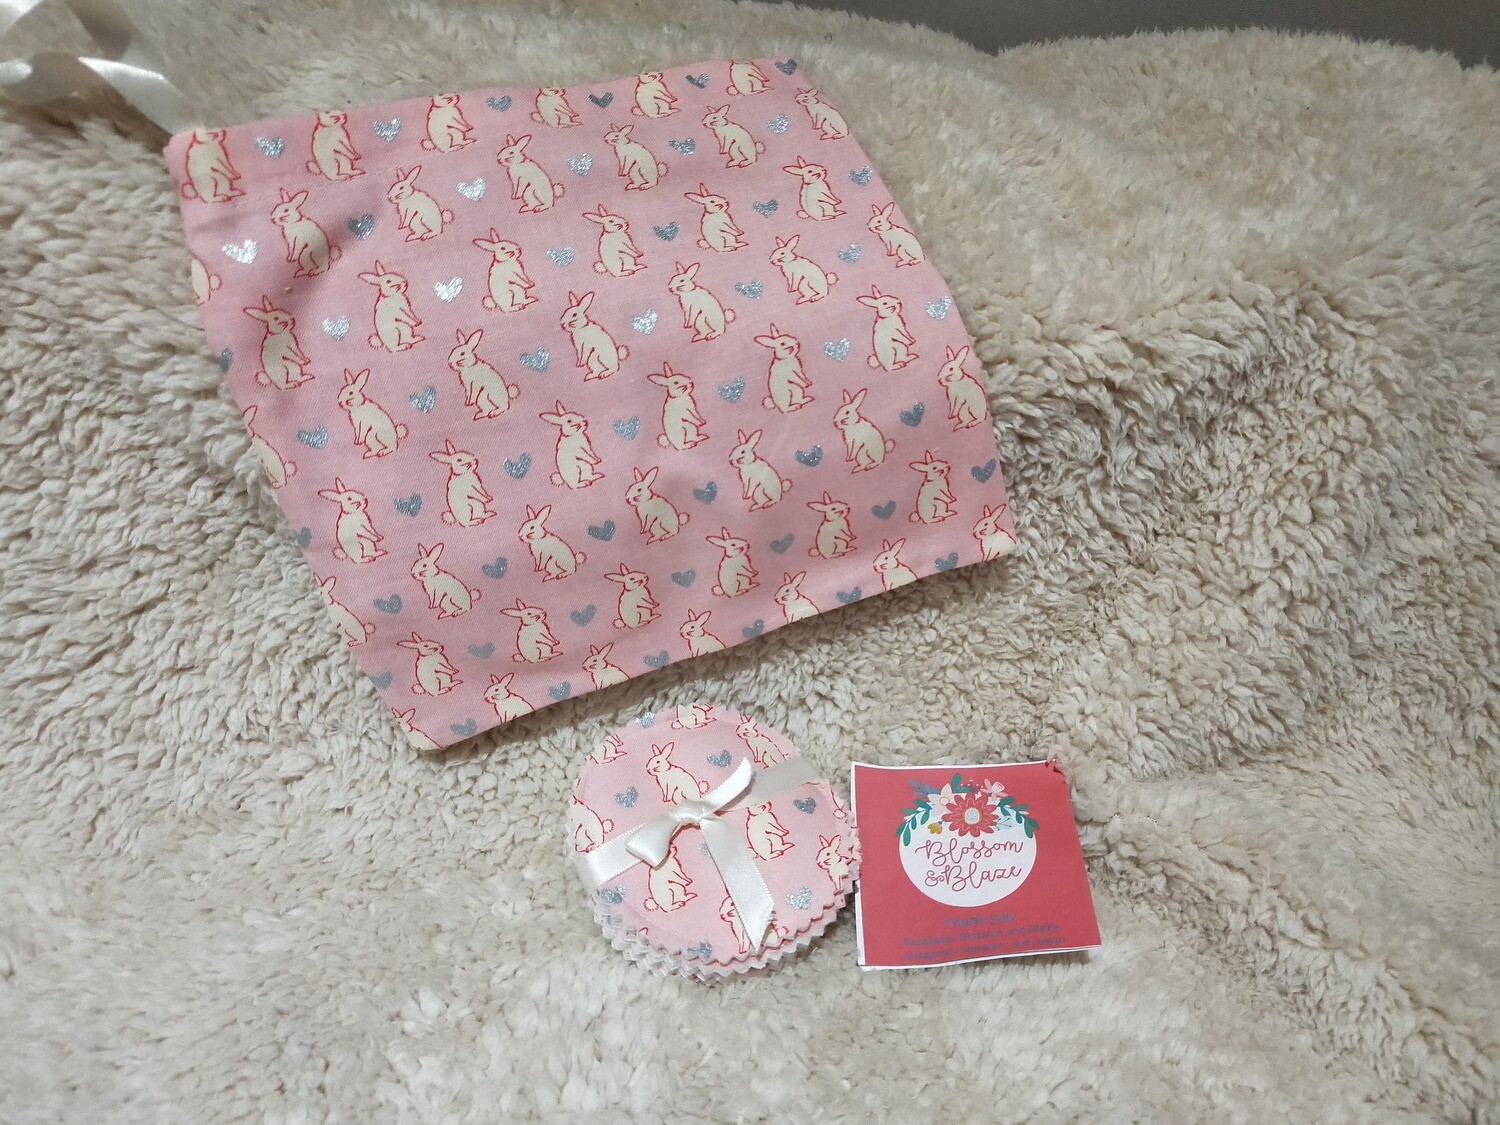 Blossom & Blaze - Wash bag & Make up pads 2